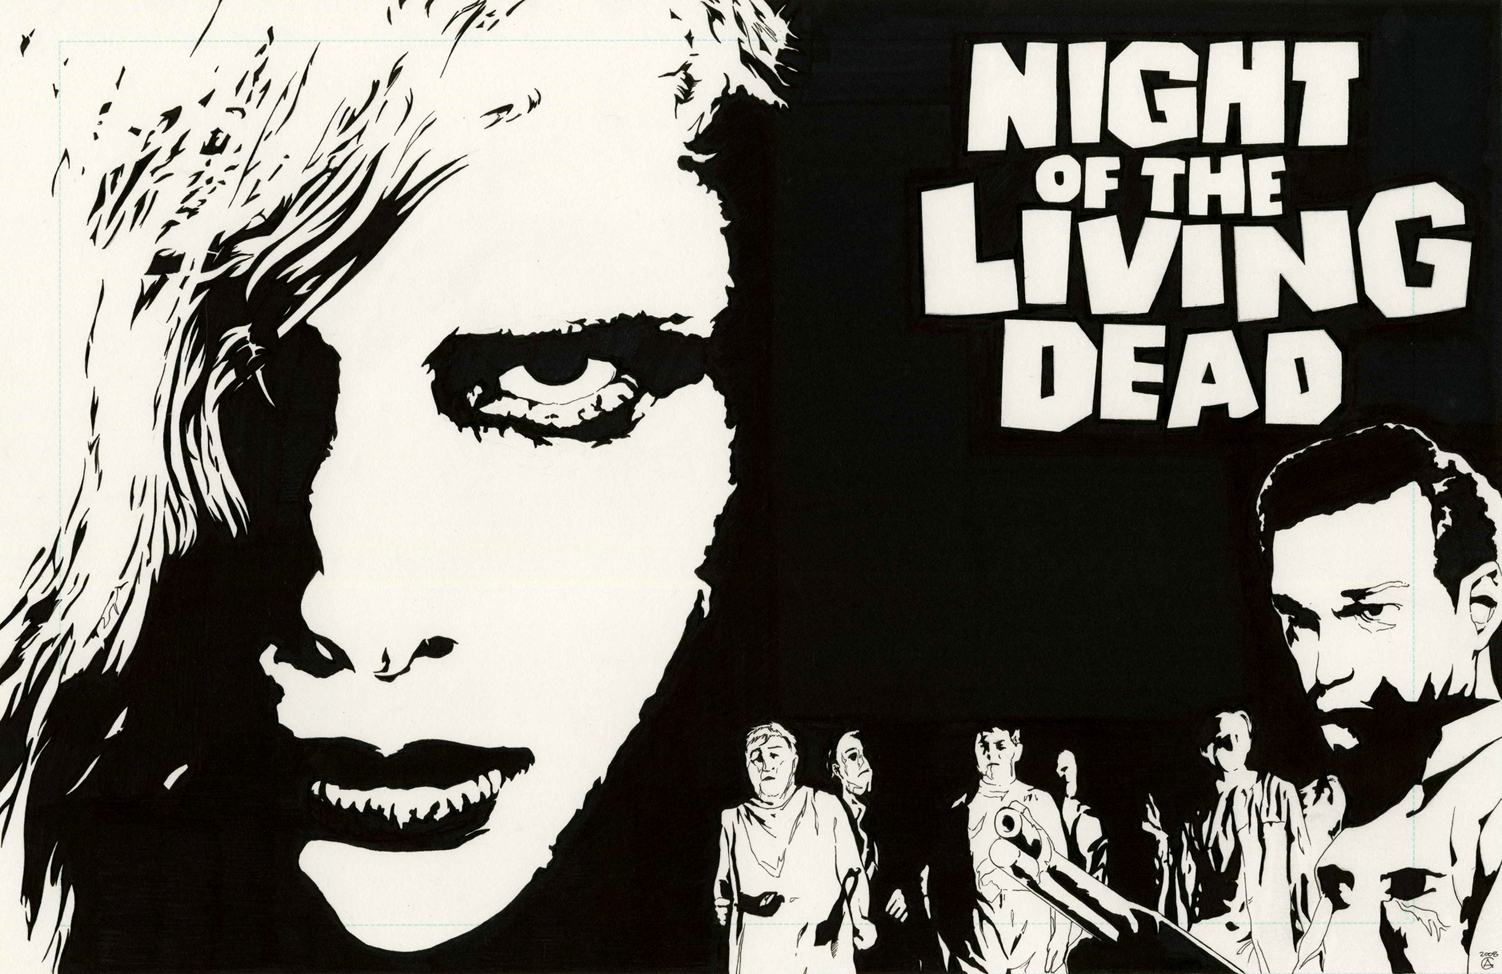 bw-night-of-the-living-dead-zombie